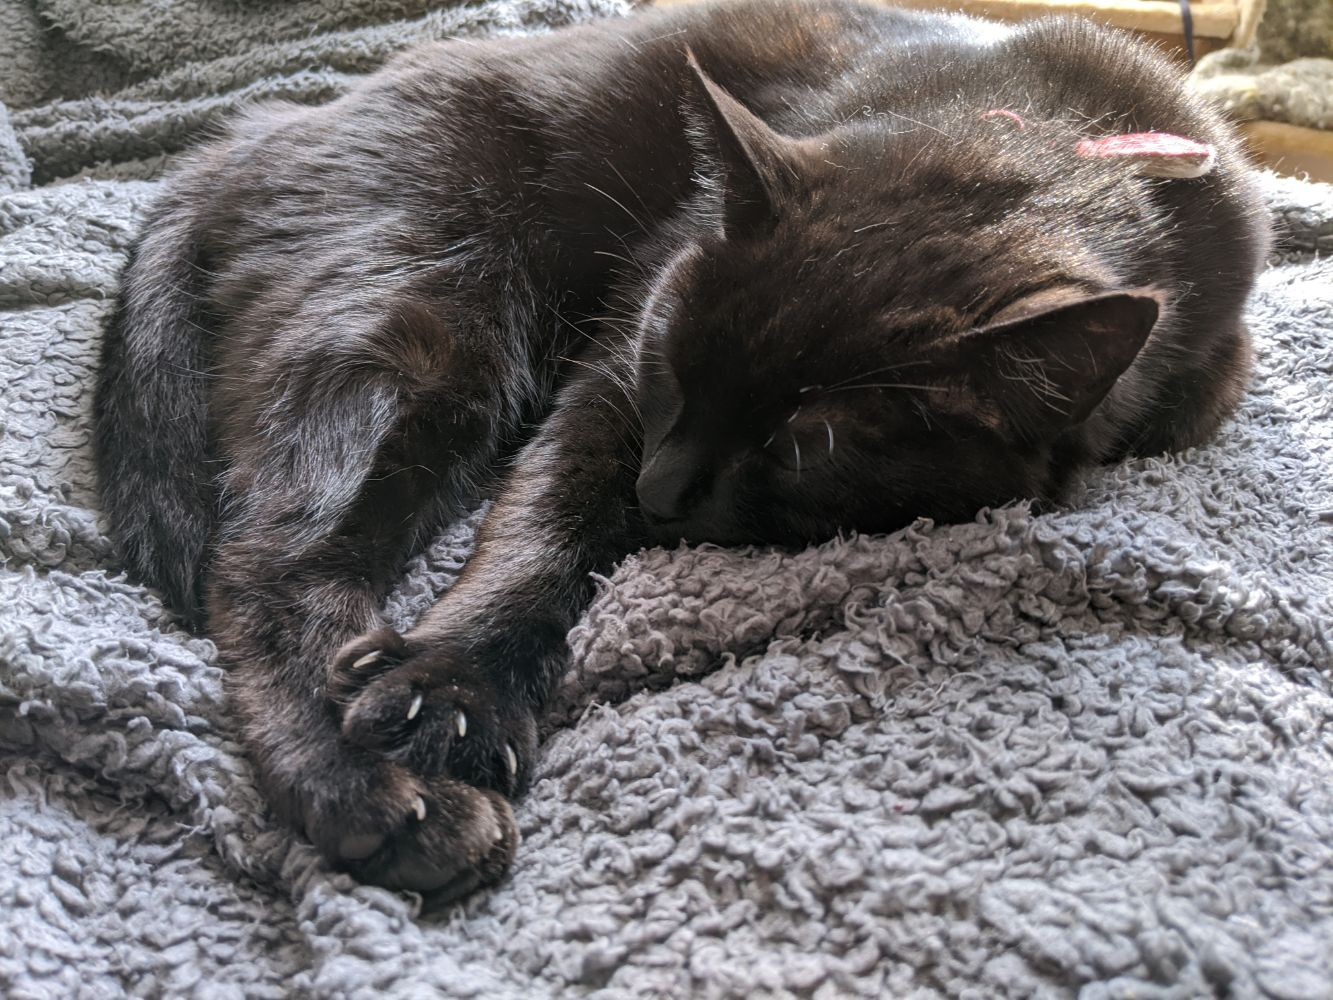 Black cat sleeping curled in roughly a heart shape, with all his paws collected in a puddle